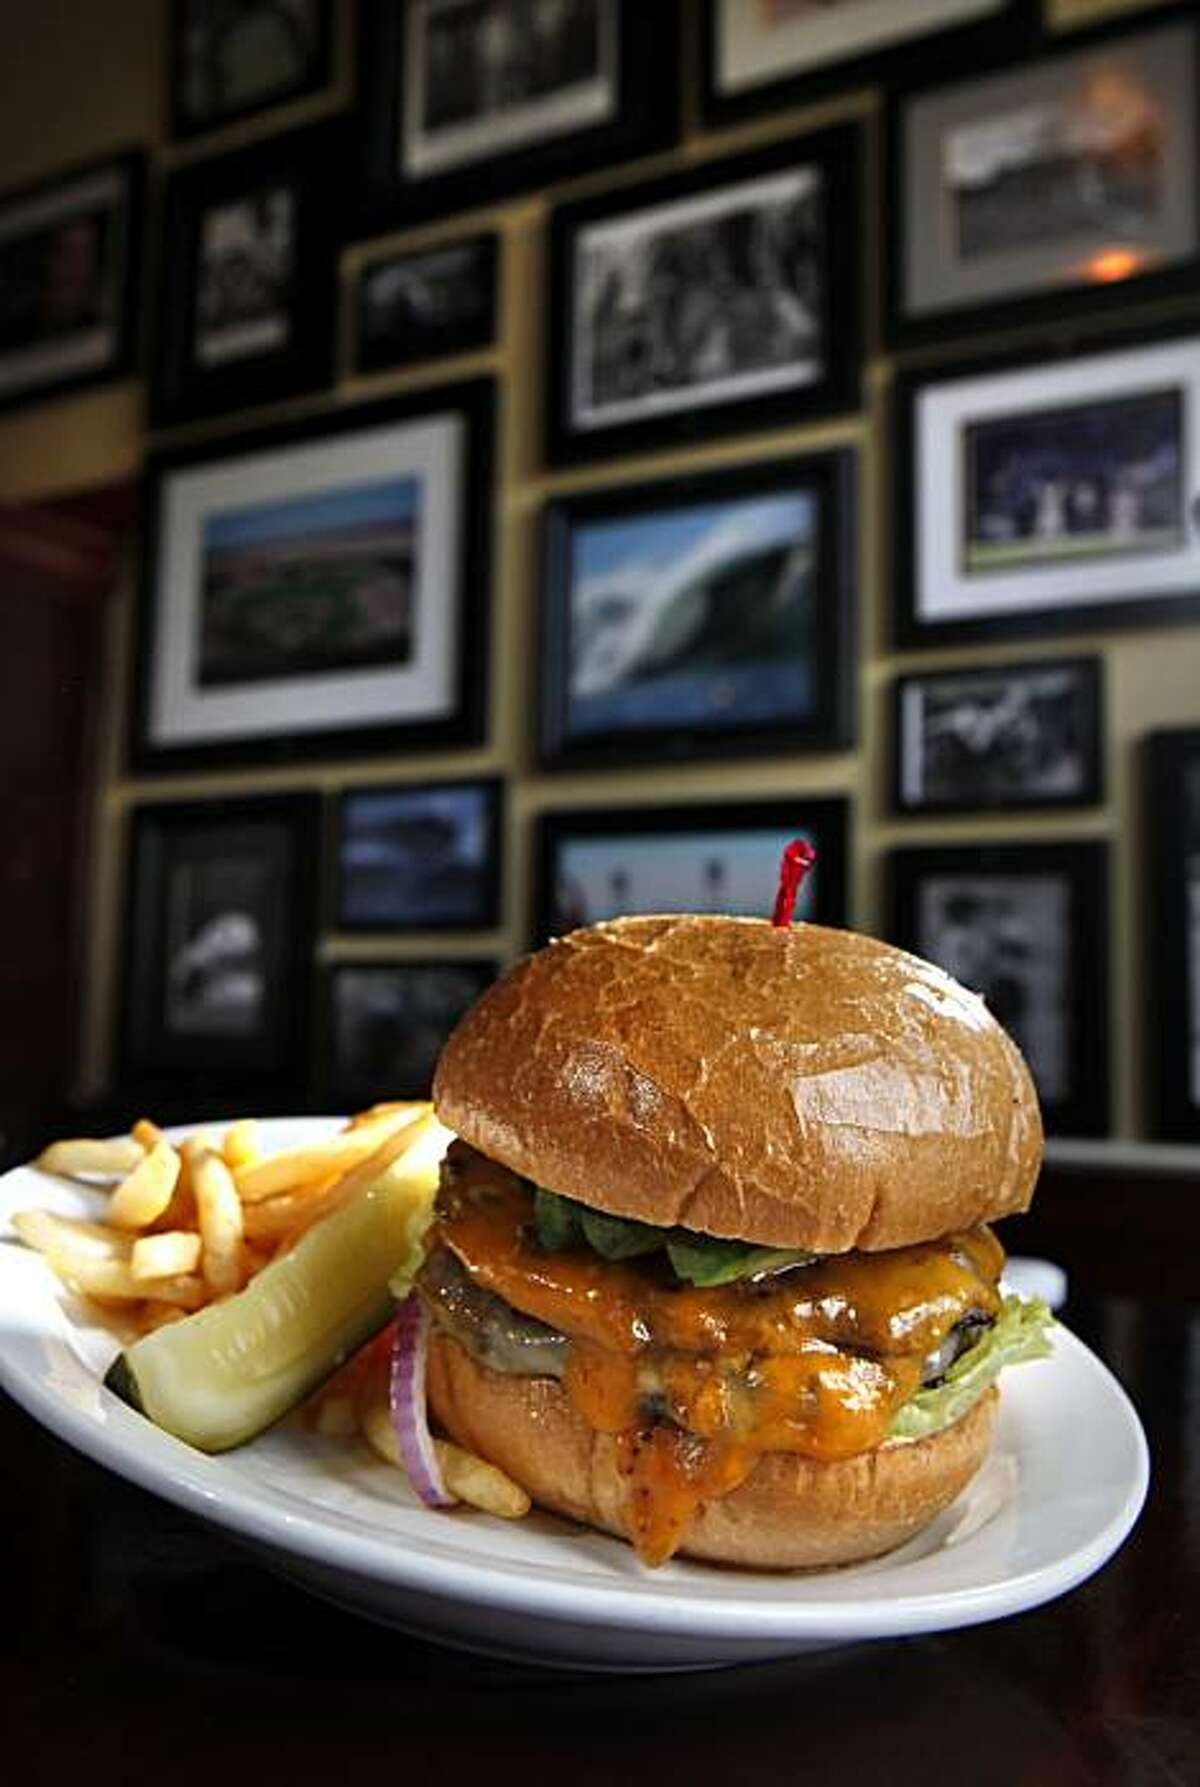 The triple cheeseburger served at Finnegan's Marin in Novato. FInnegan's is a classic Irish Pub that caters to families in the day and grown-ups in the evening.